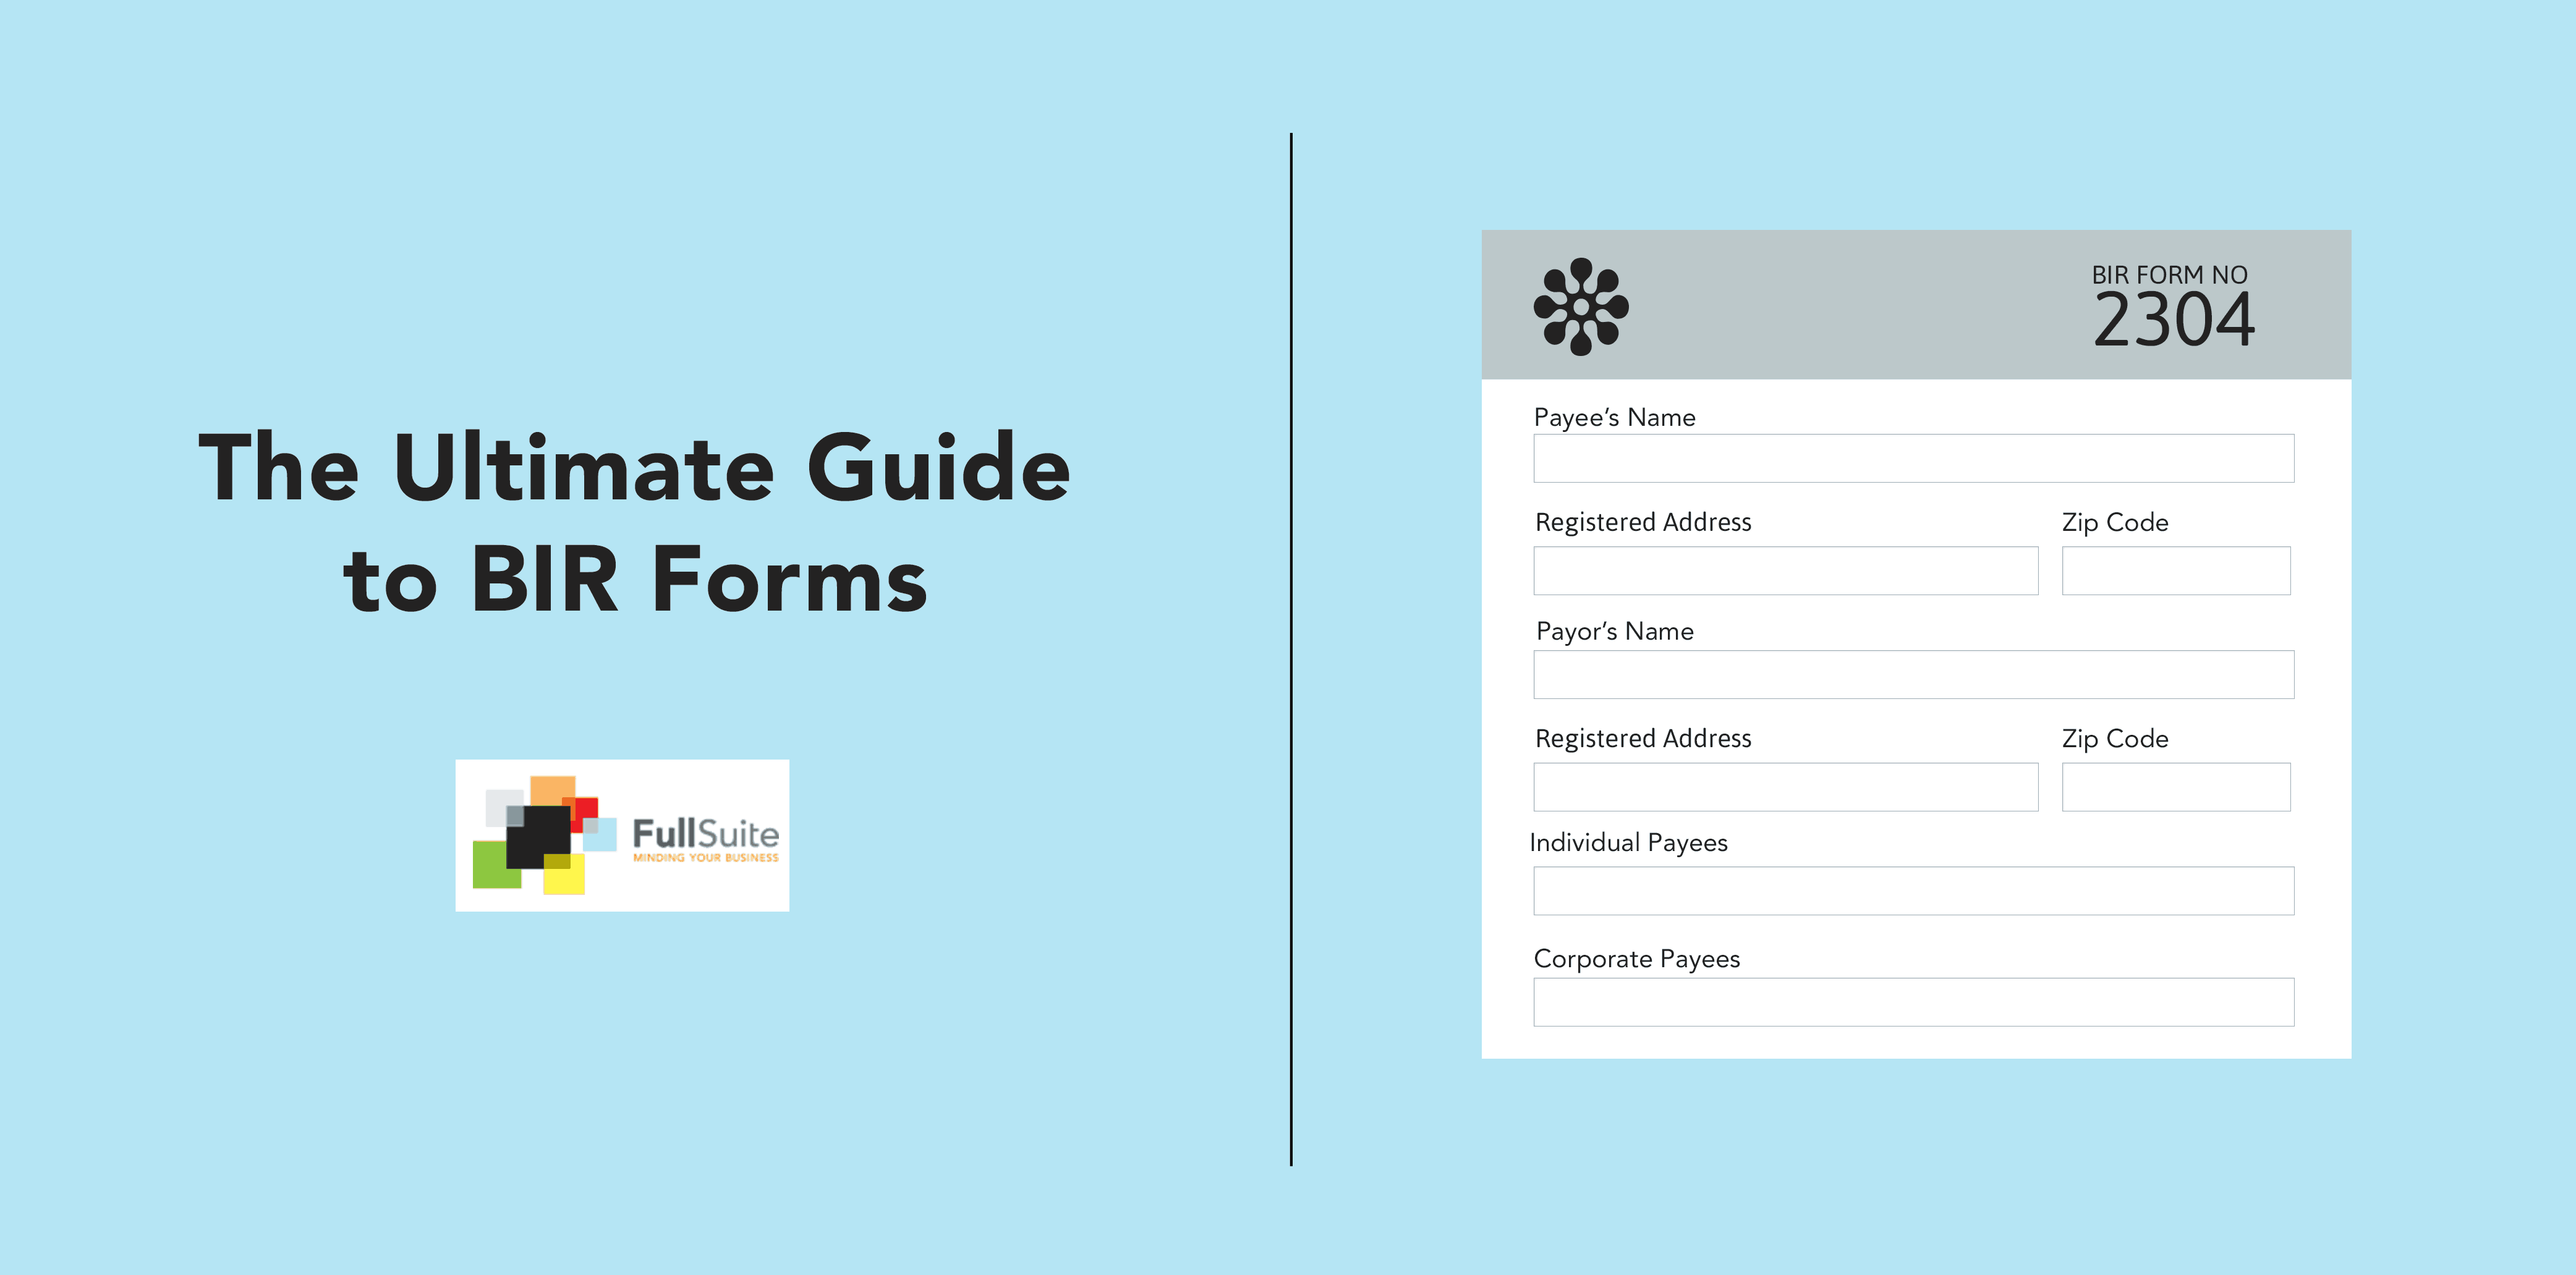 The Ultimate Guide to BIR Forms